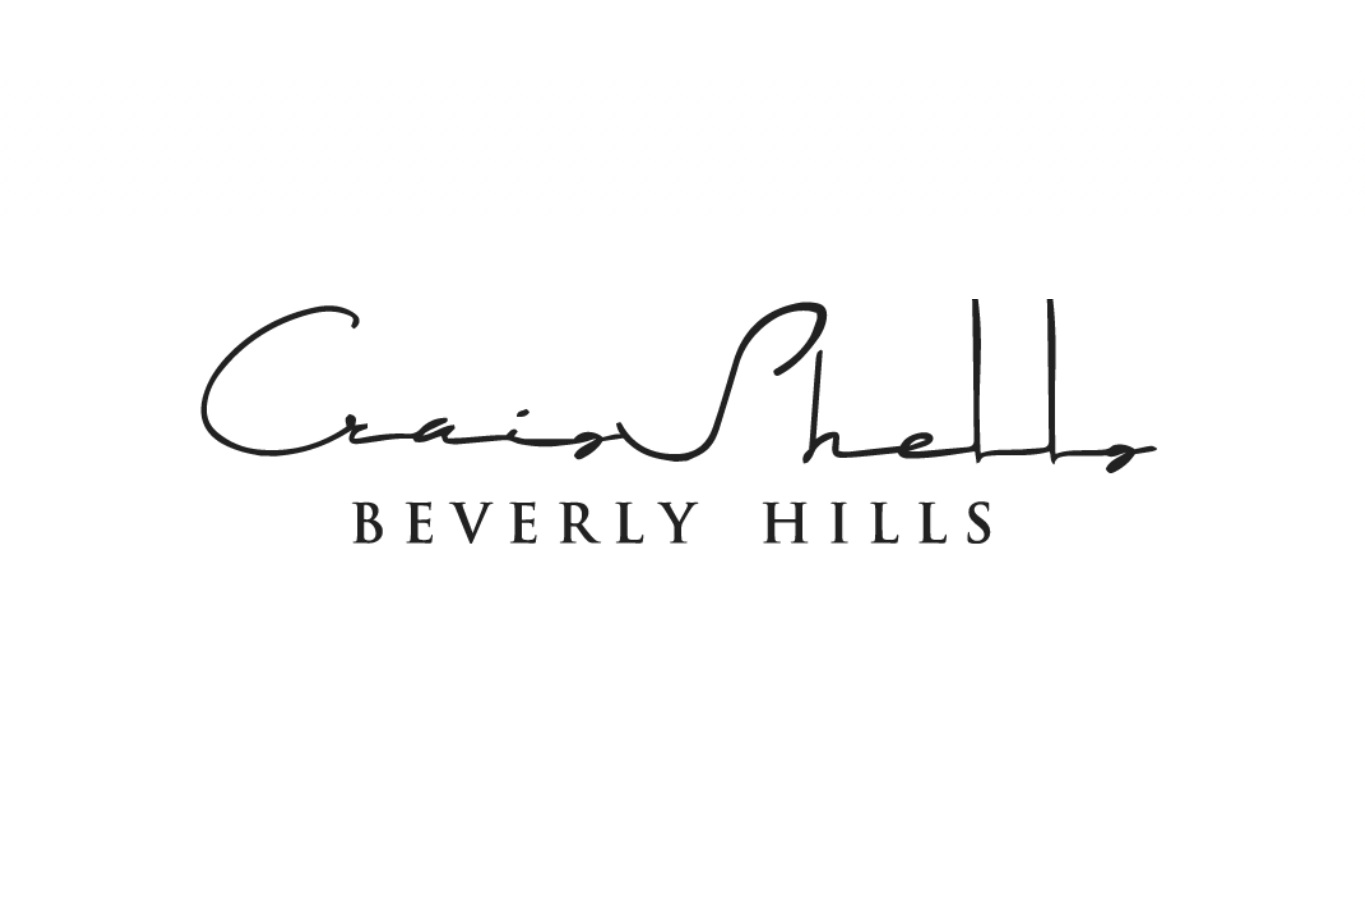 Craig Shelly Beverly Hills